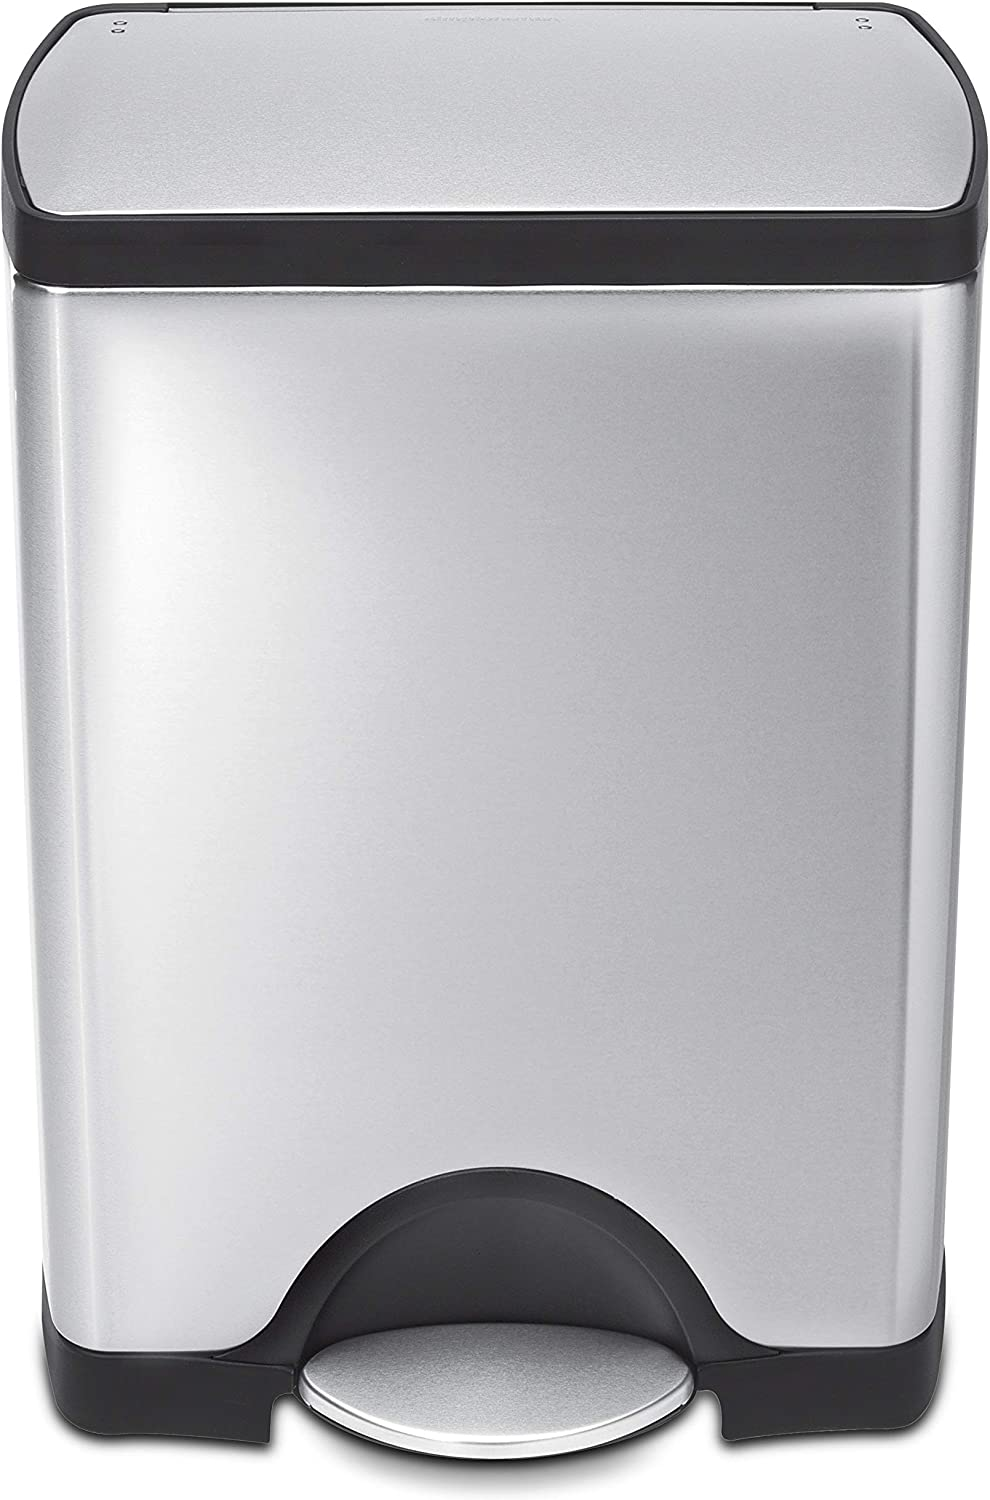 simplehuman 30 Liter / 8 Gallon Rectangular Kitchen Step Trash Can, Brushed Stainless Steel